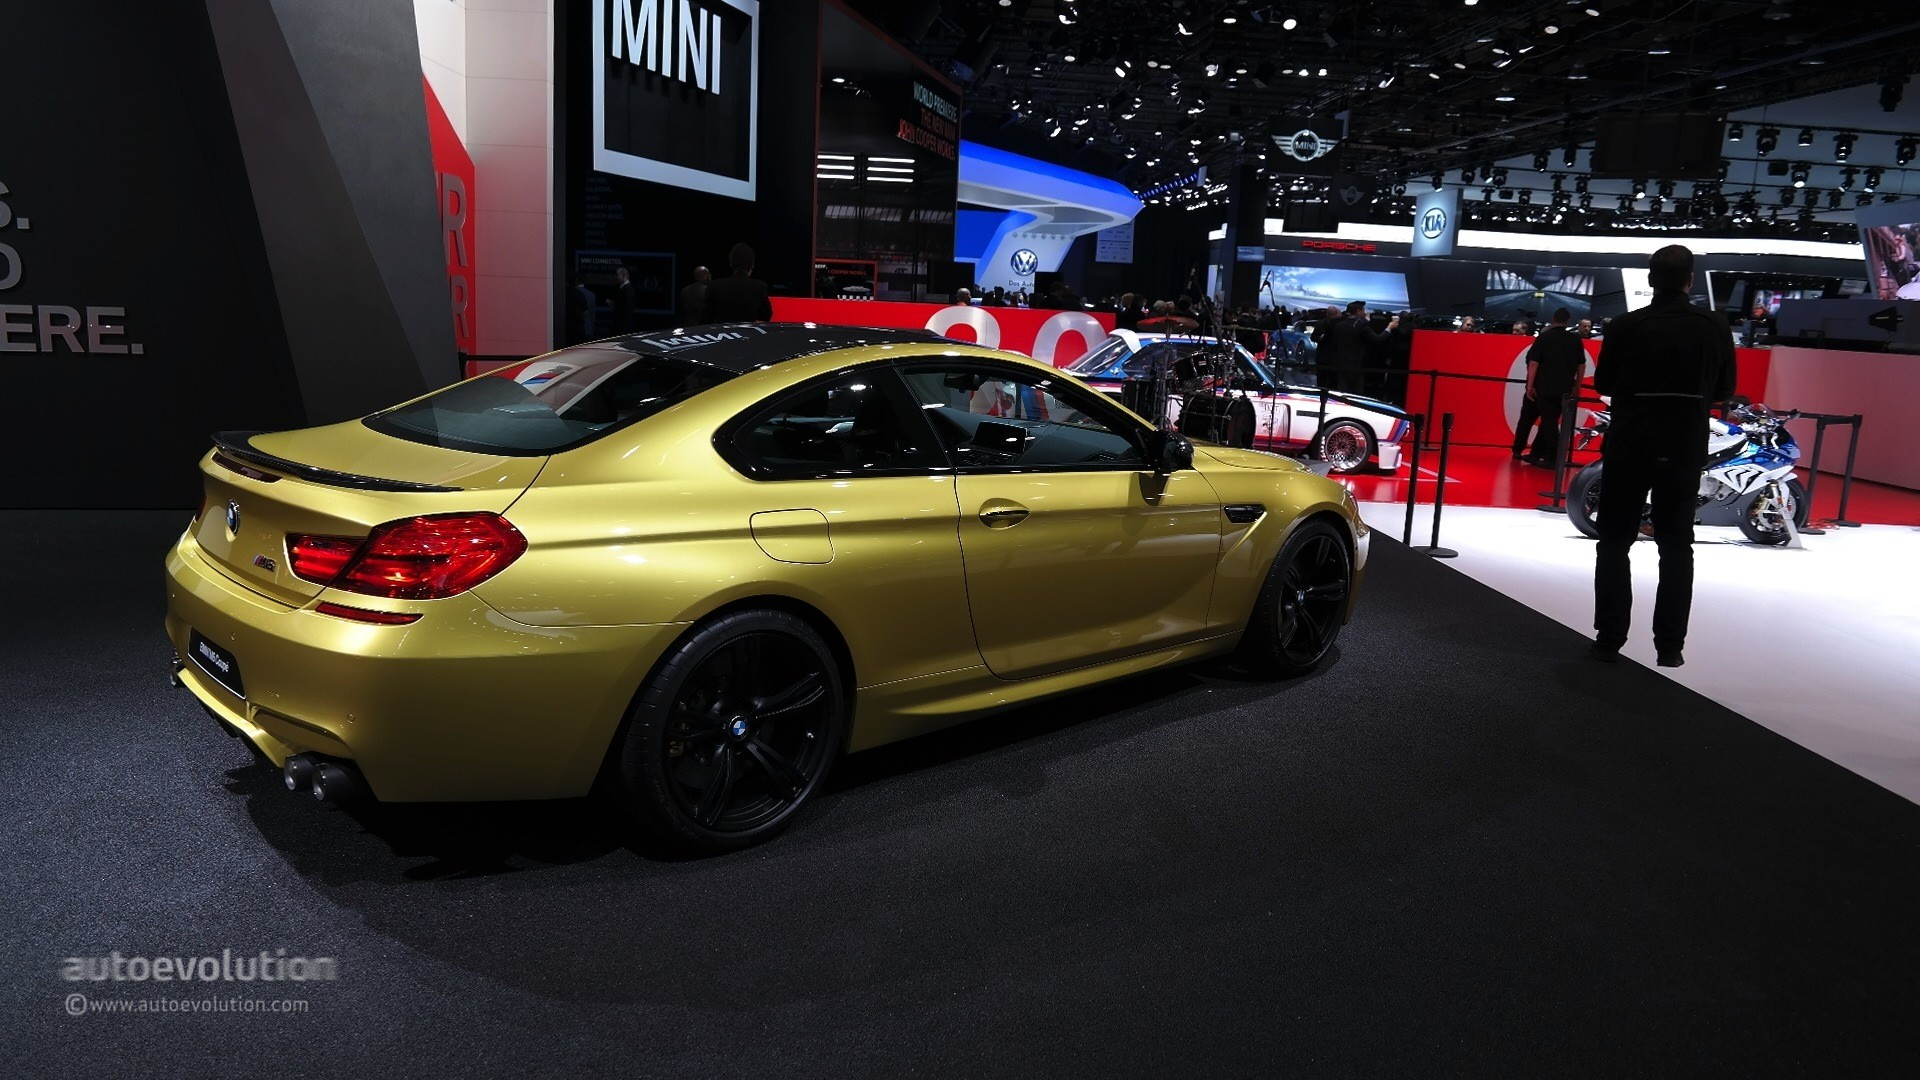 World Car Kia >> World Debut for 2015 BMW M6 LCI in Austin Yellow at the ...